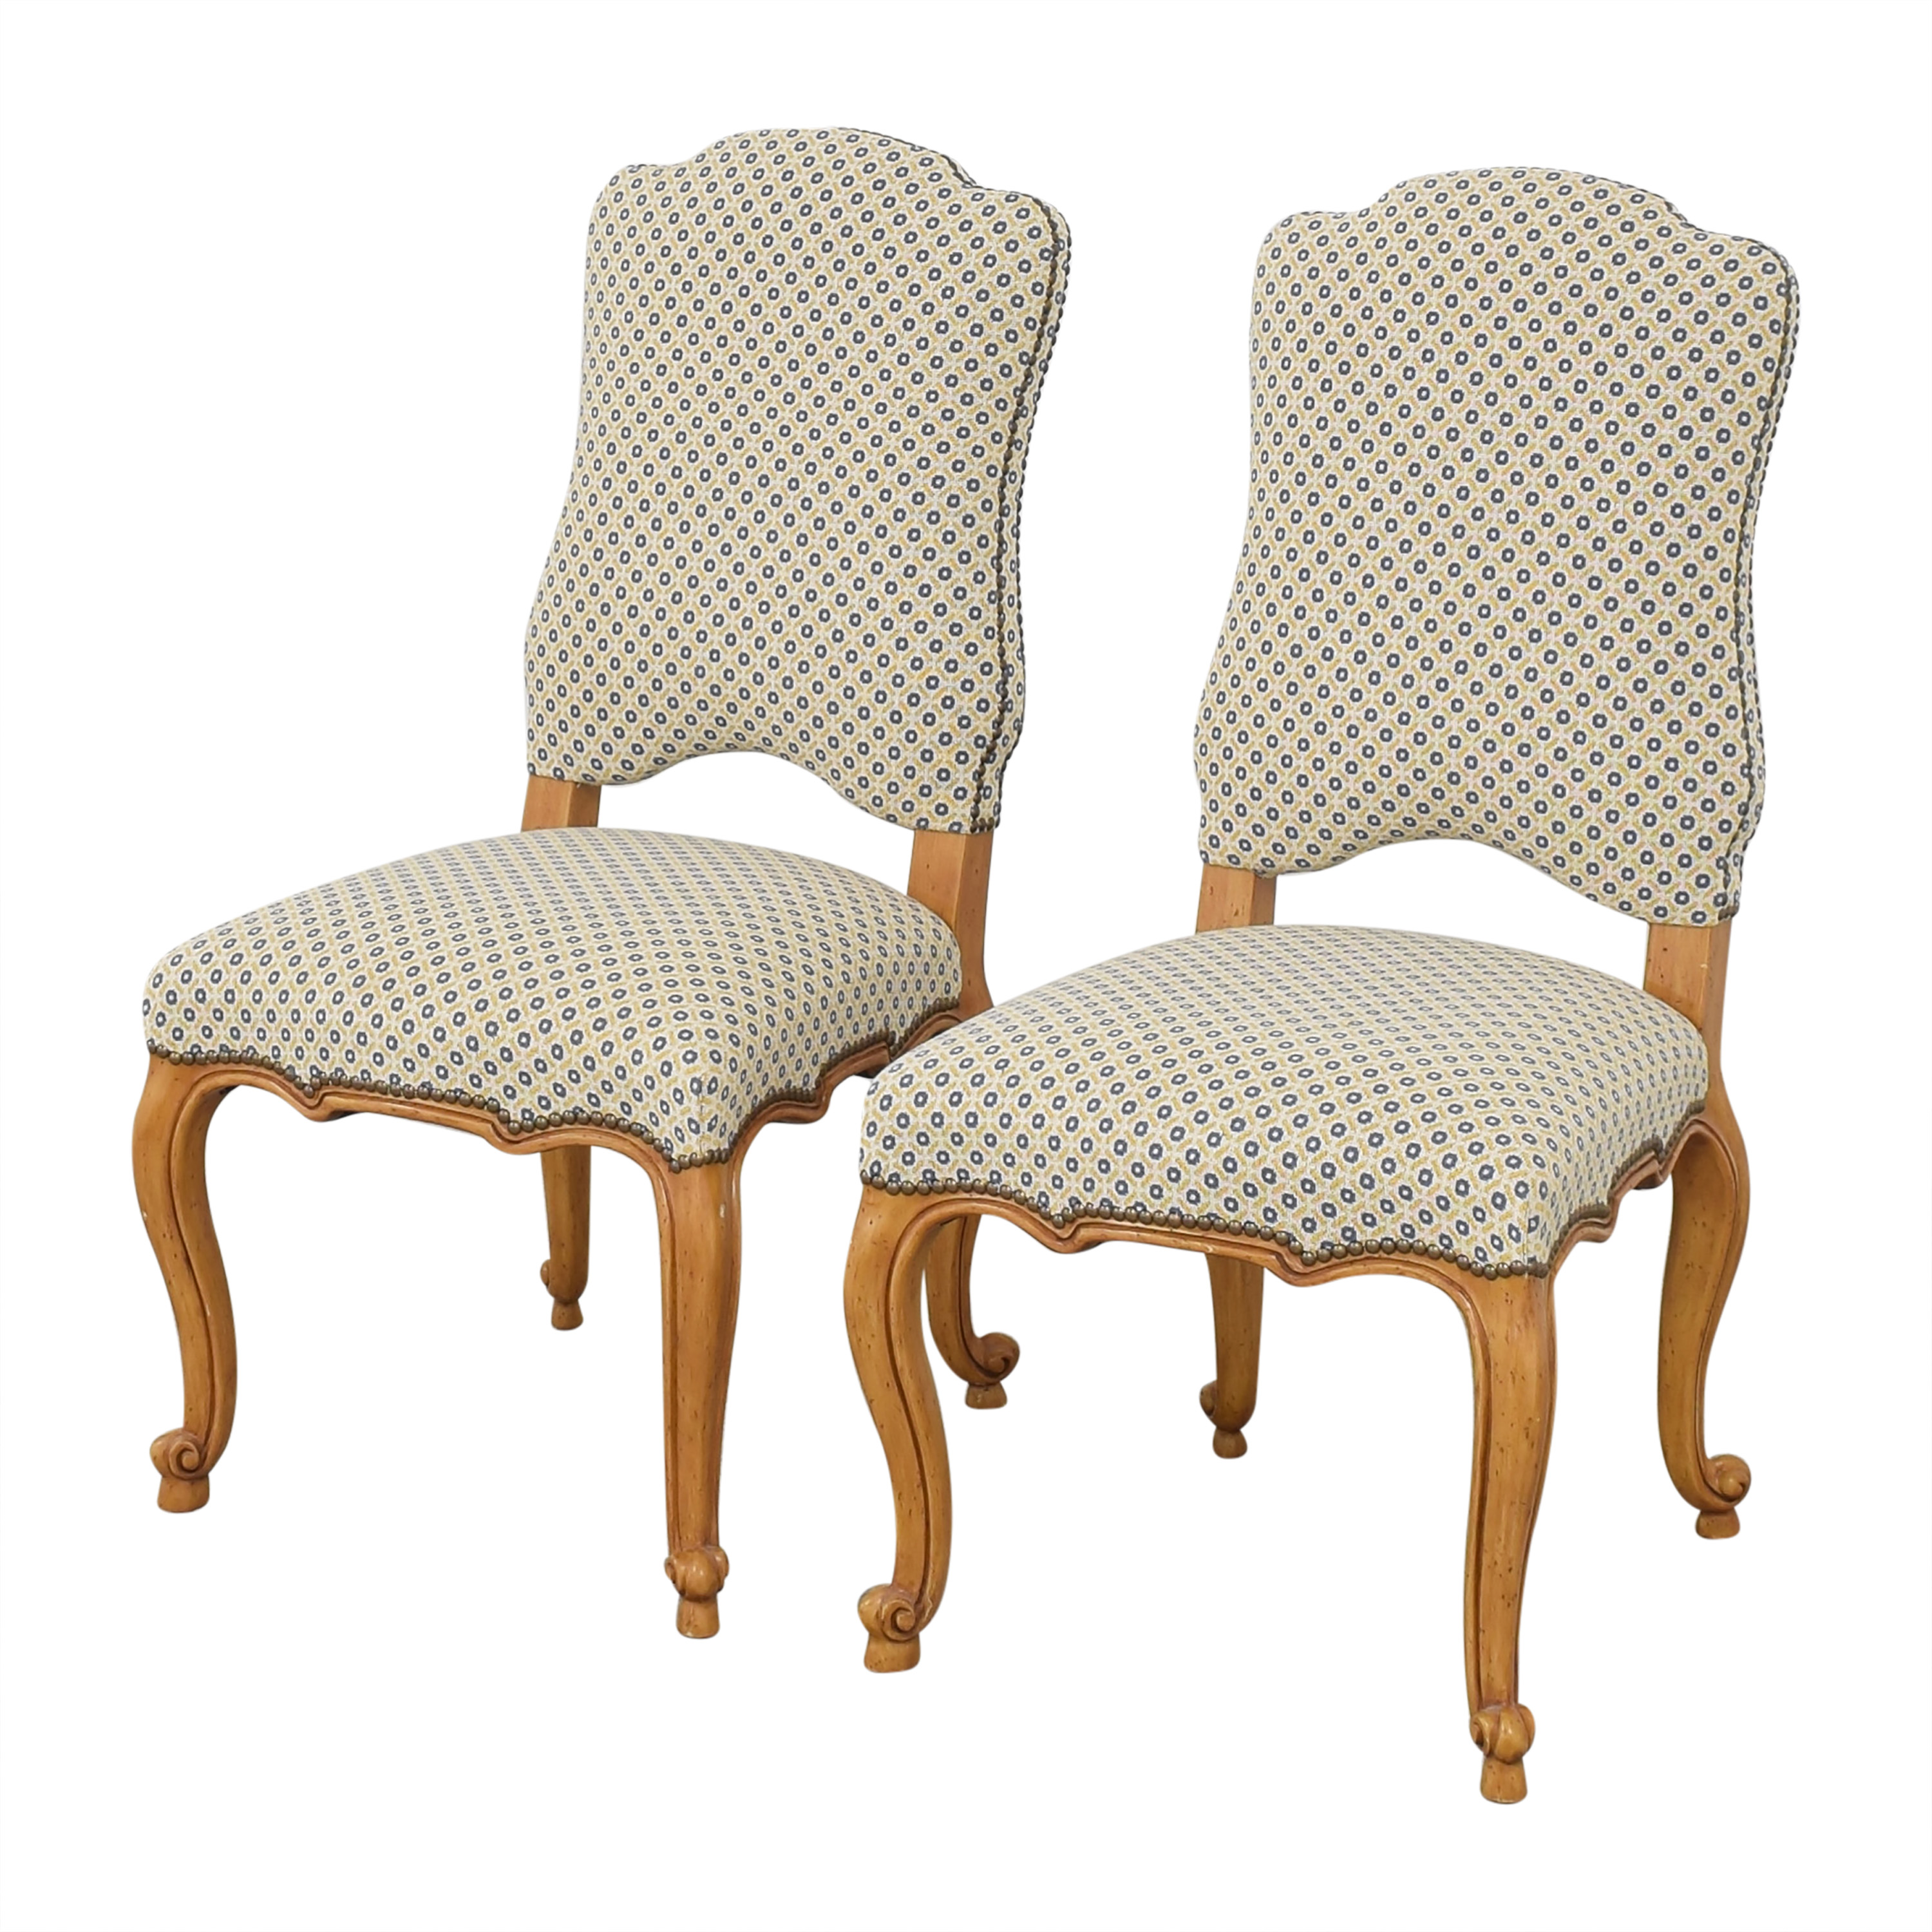 Minton-Spidell Minton-Spidell Regence Dining Side Chairs for sale